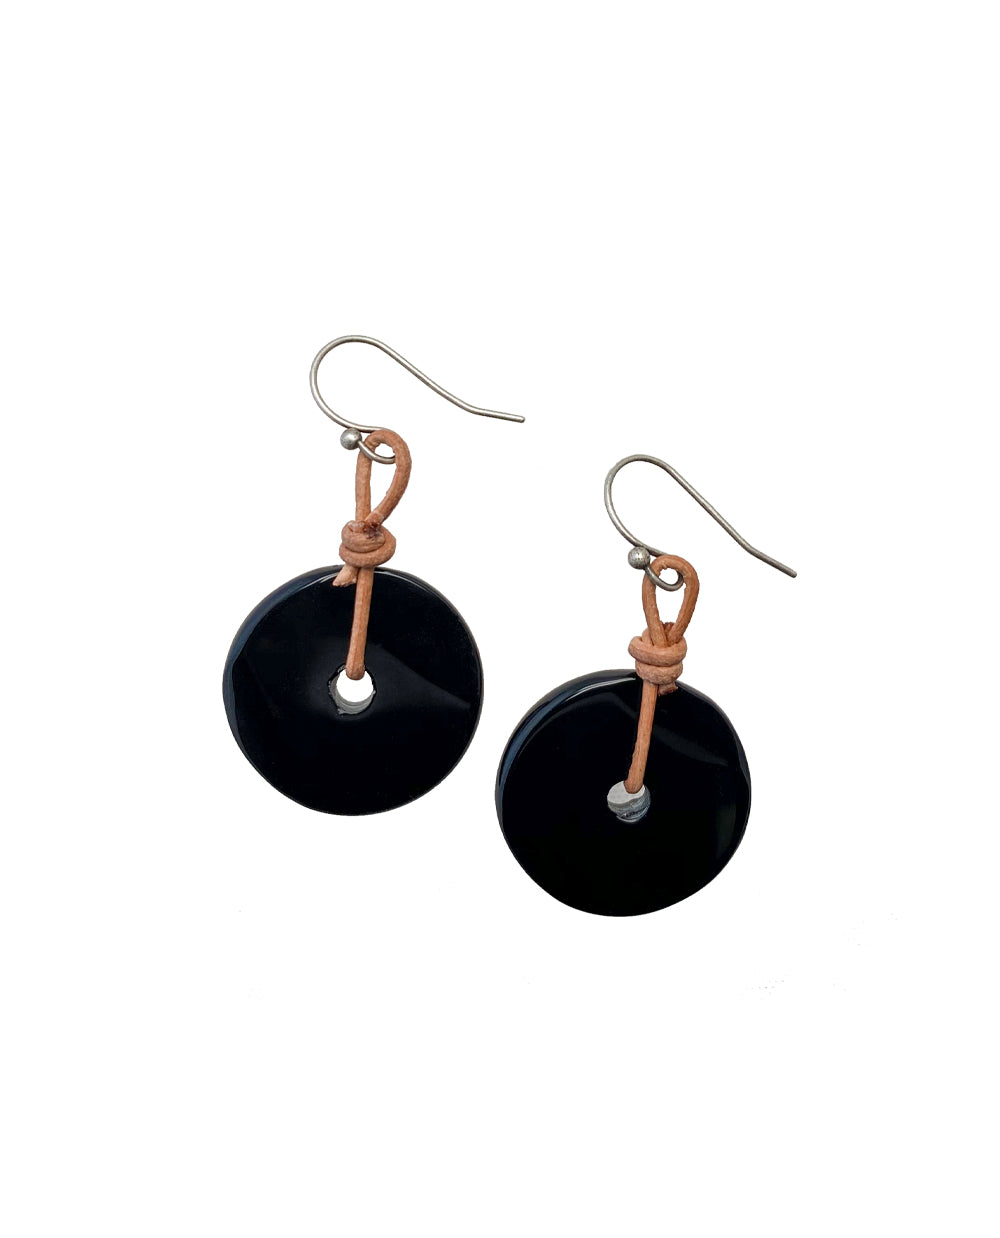 BLACK ONYX DONUT EARRING WITH LEATHER